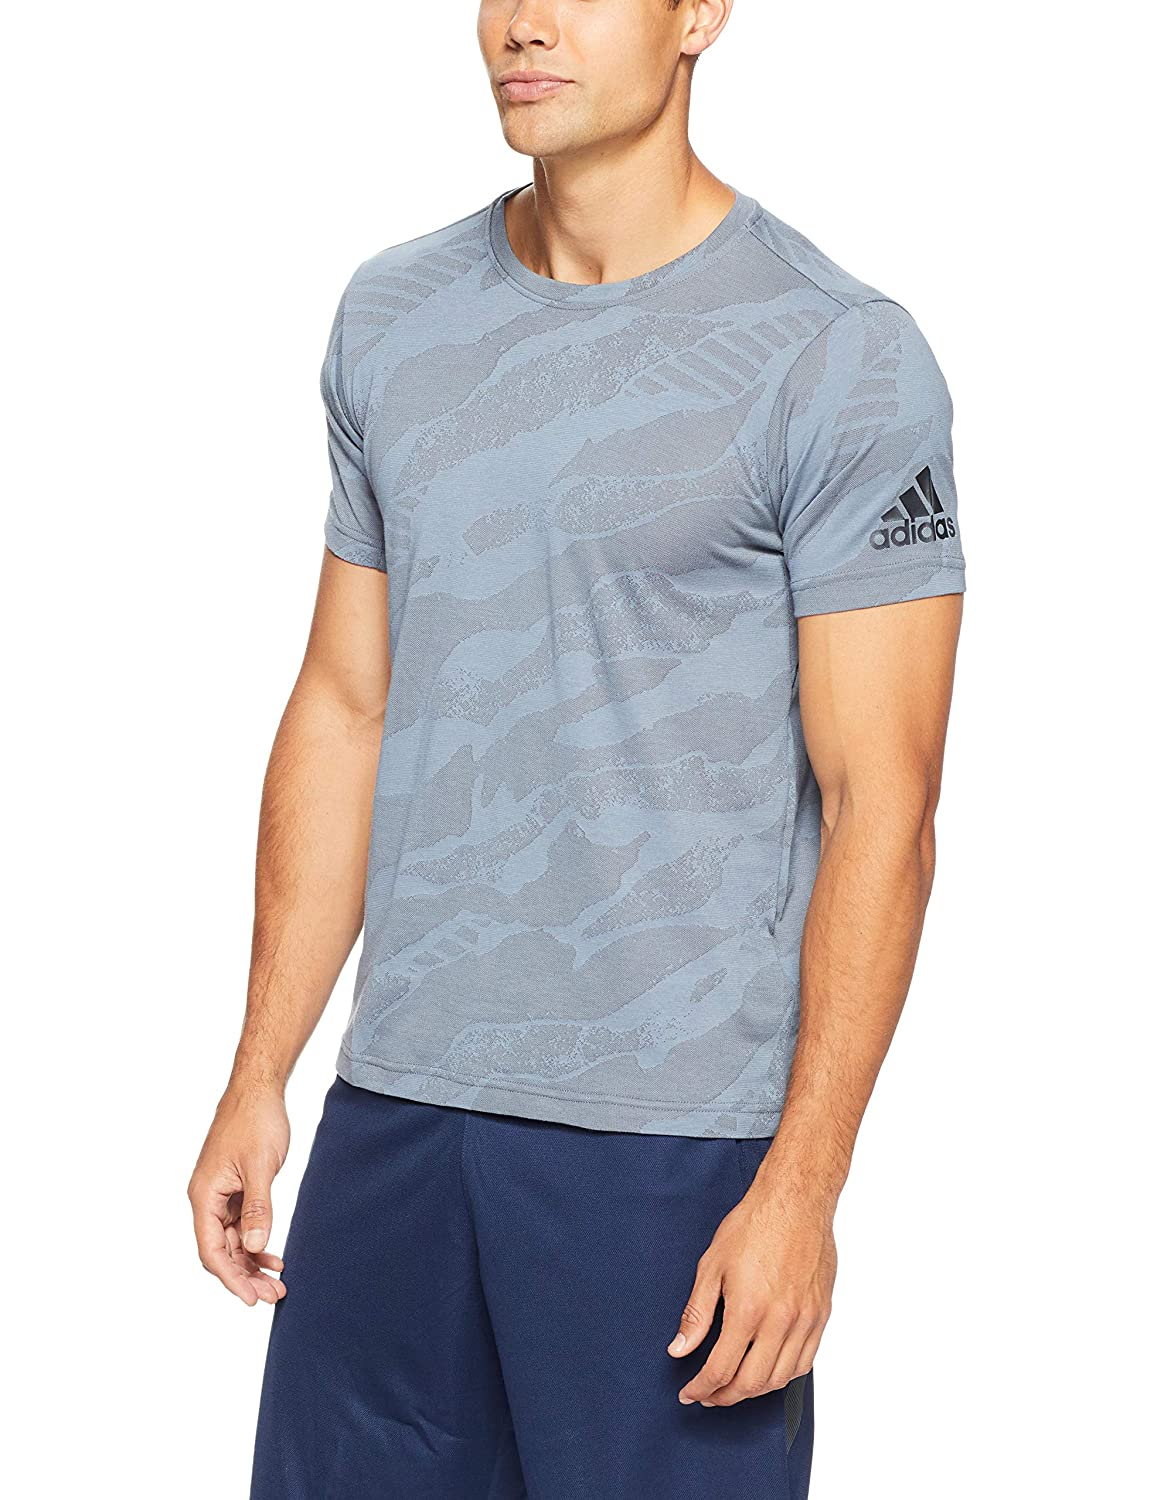 adidas Herren T Shirt FREELIFT ENGINEERED JACQUARD |